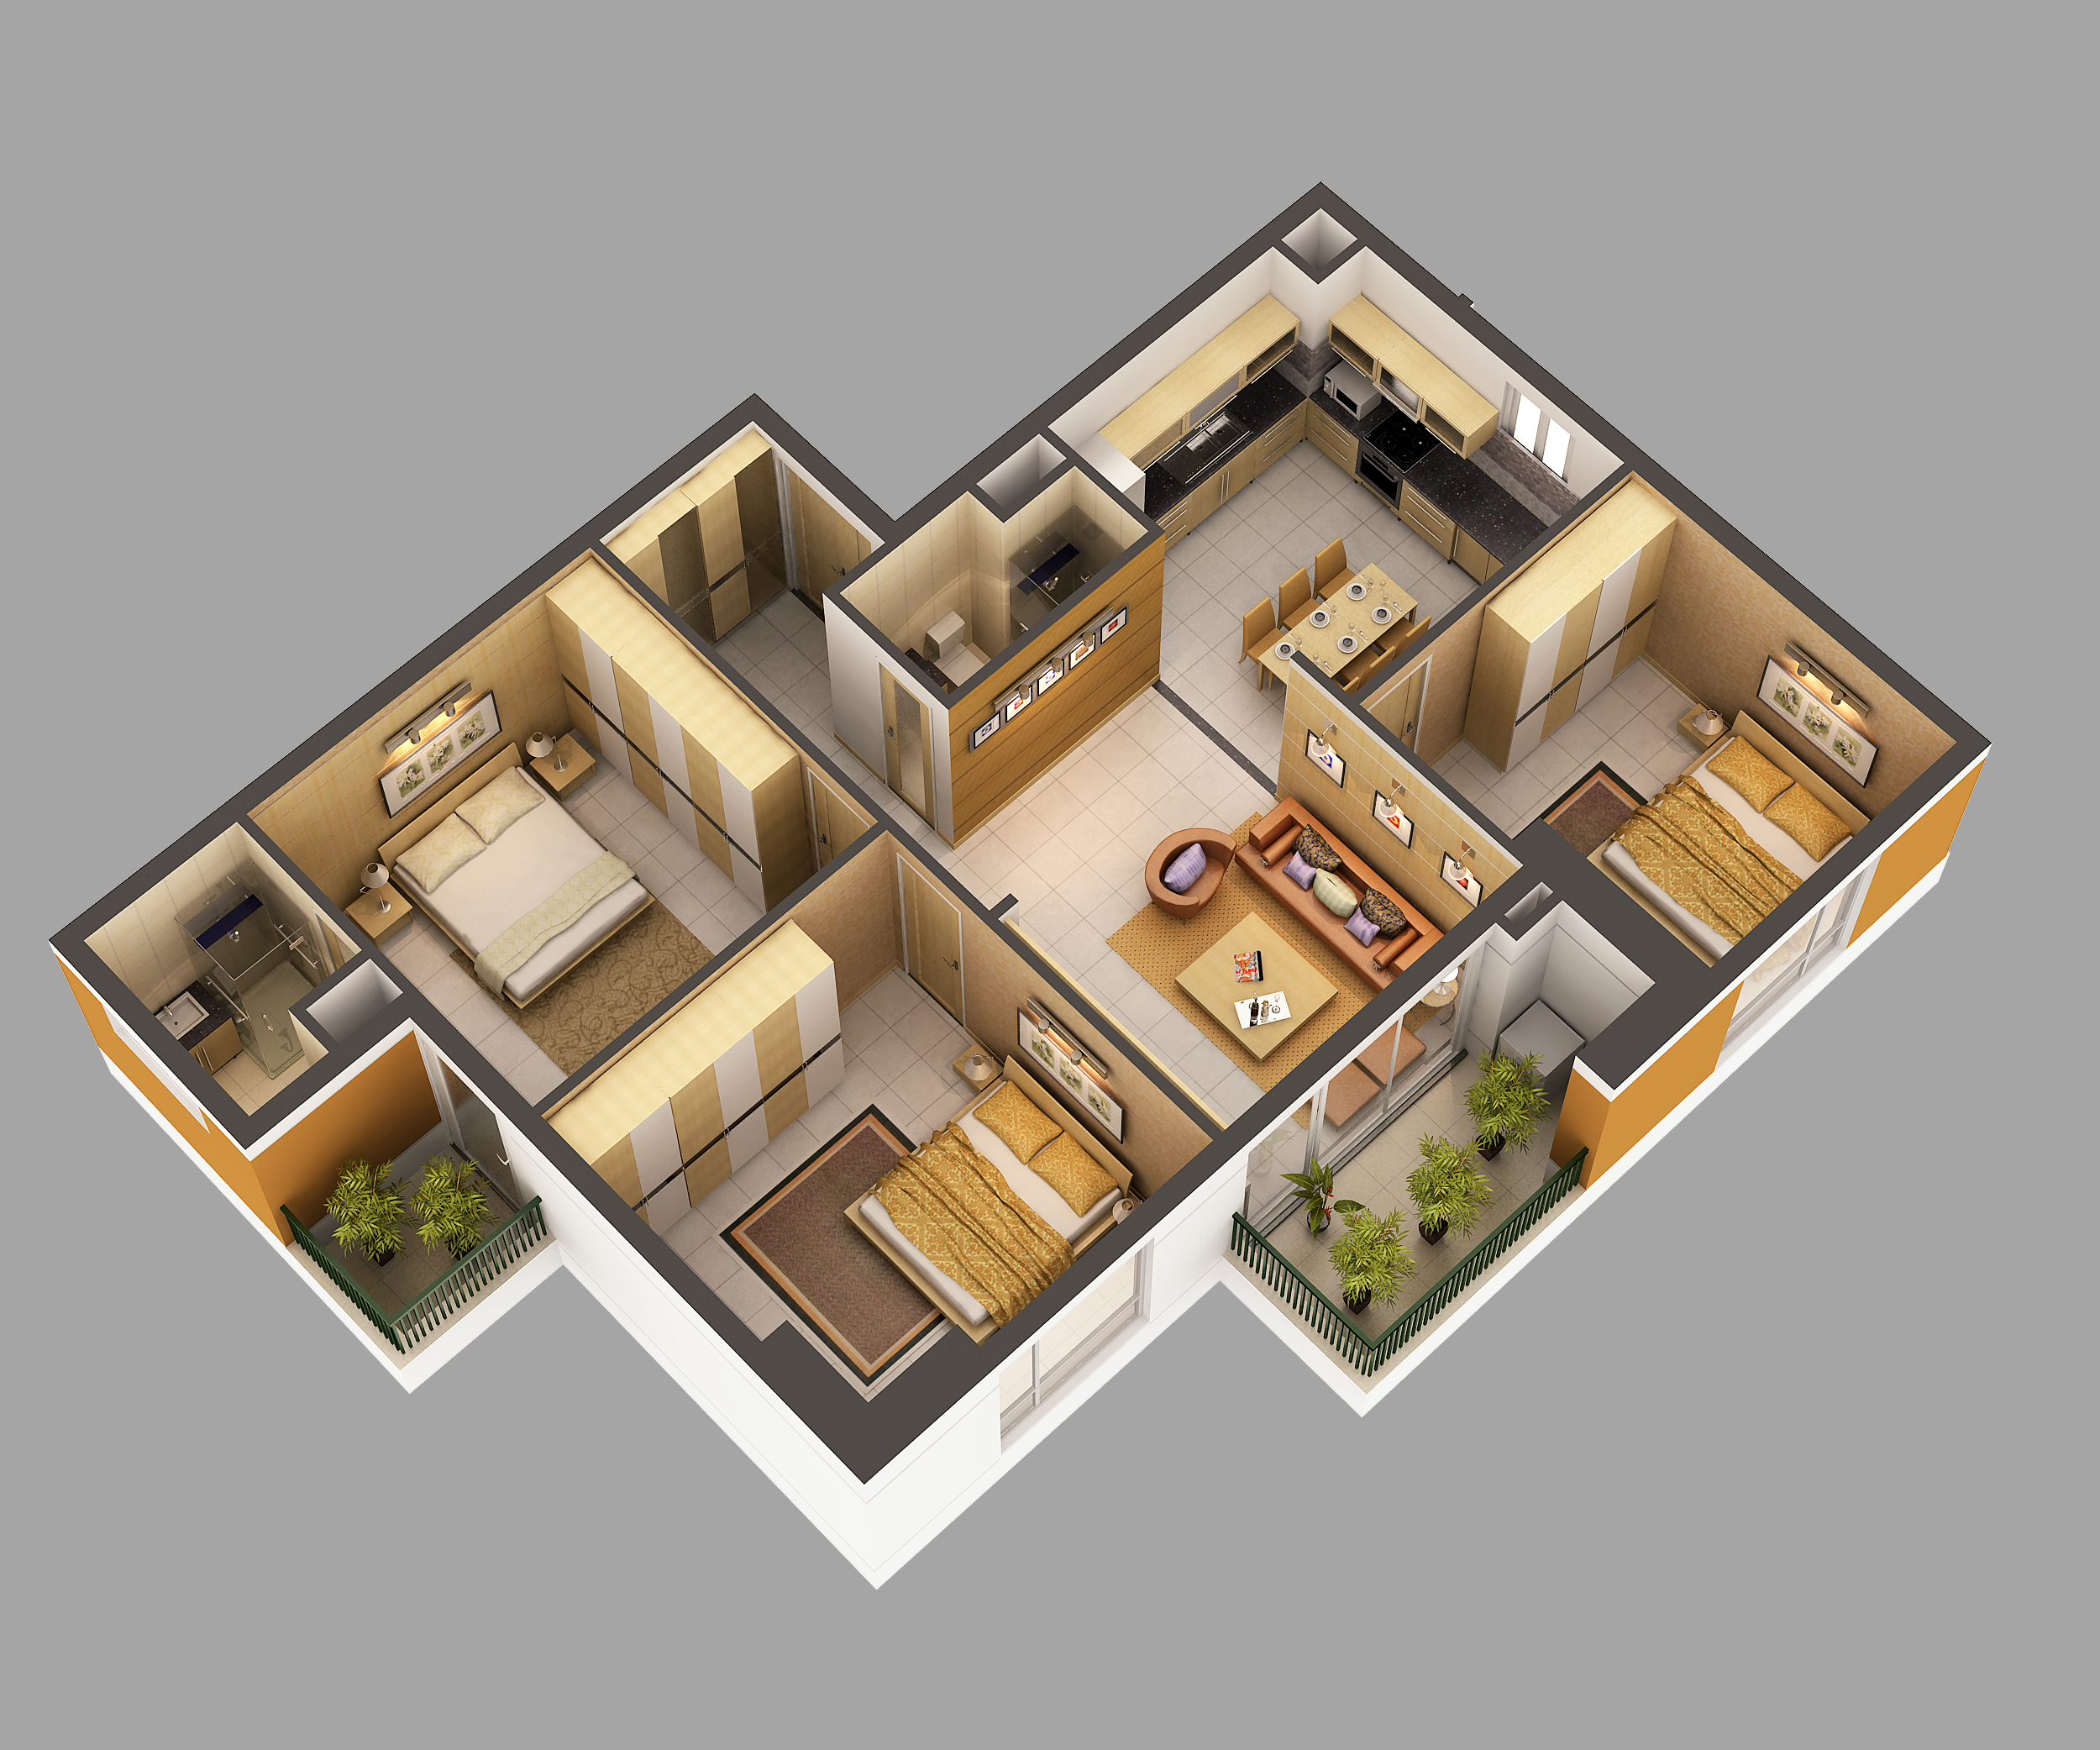 3d model home interior fully furnished 3d model max Home 3d model